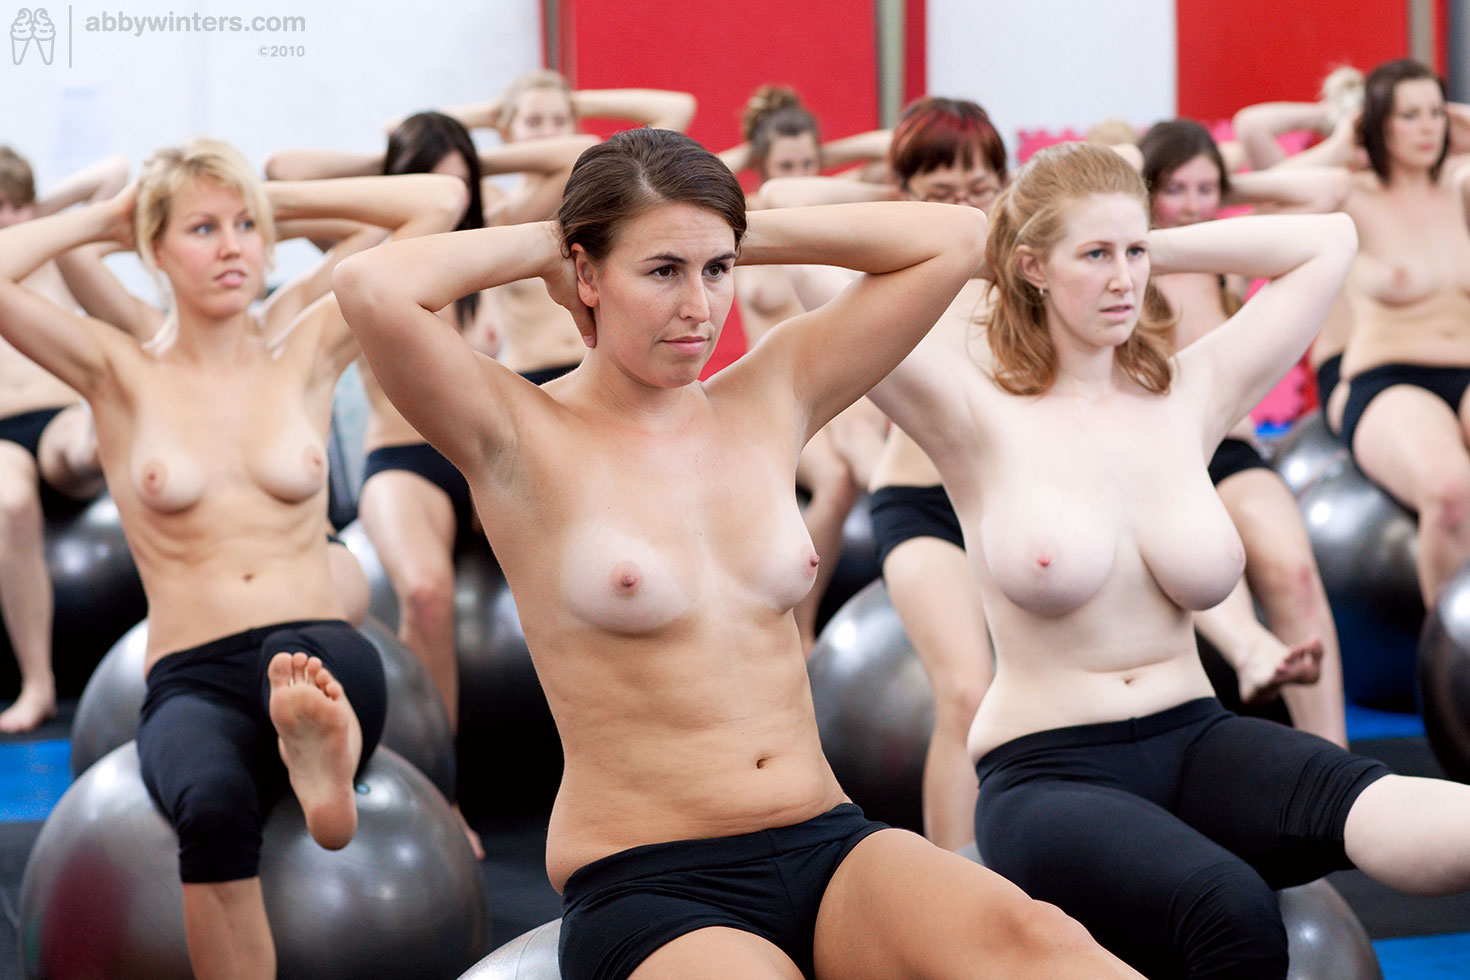 Group of naked girls working out